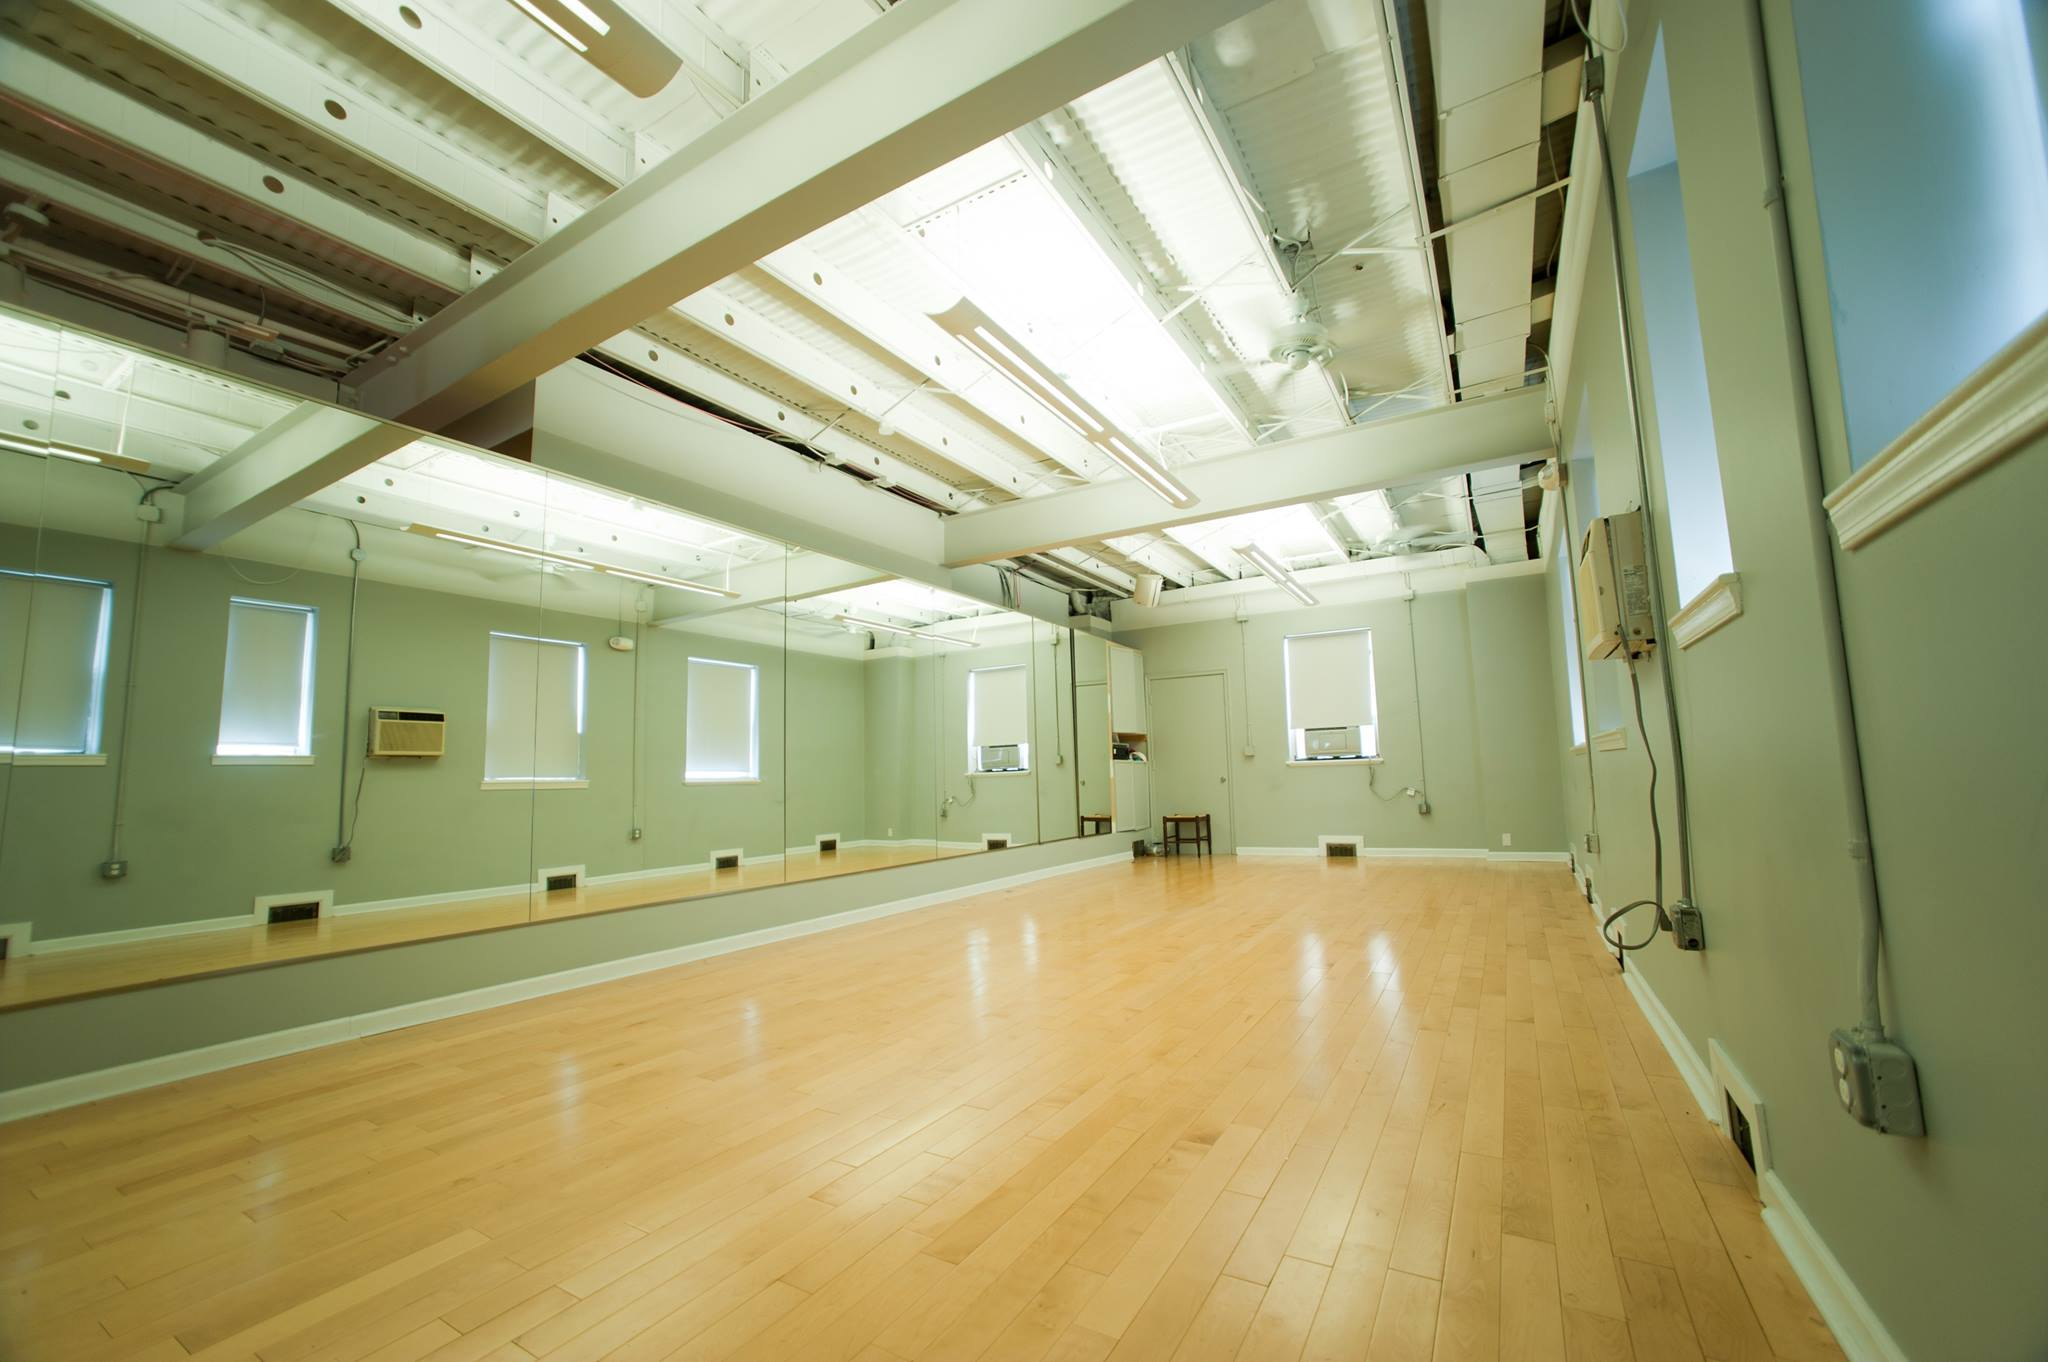 Saphira Dance Studio Venue For Rent In Alexandria